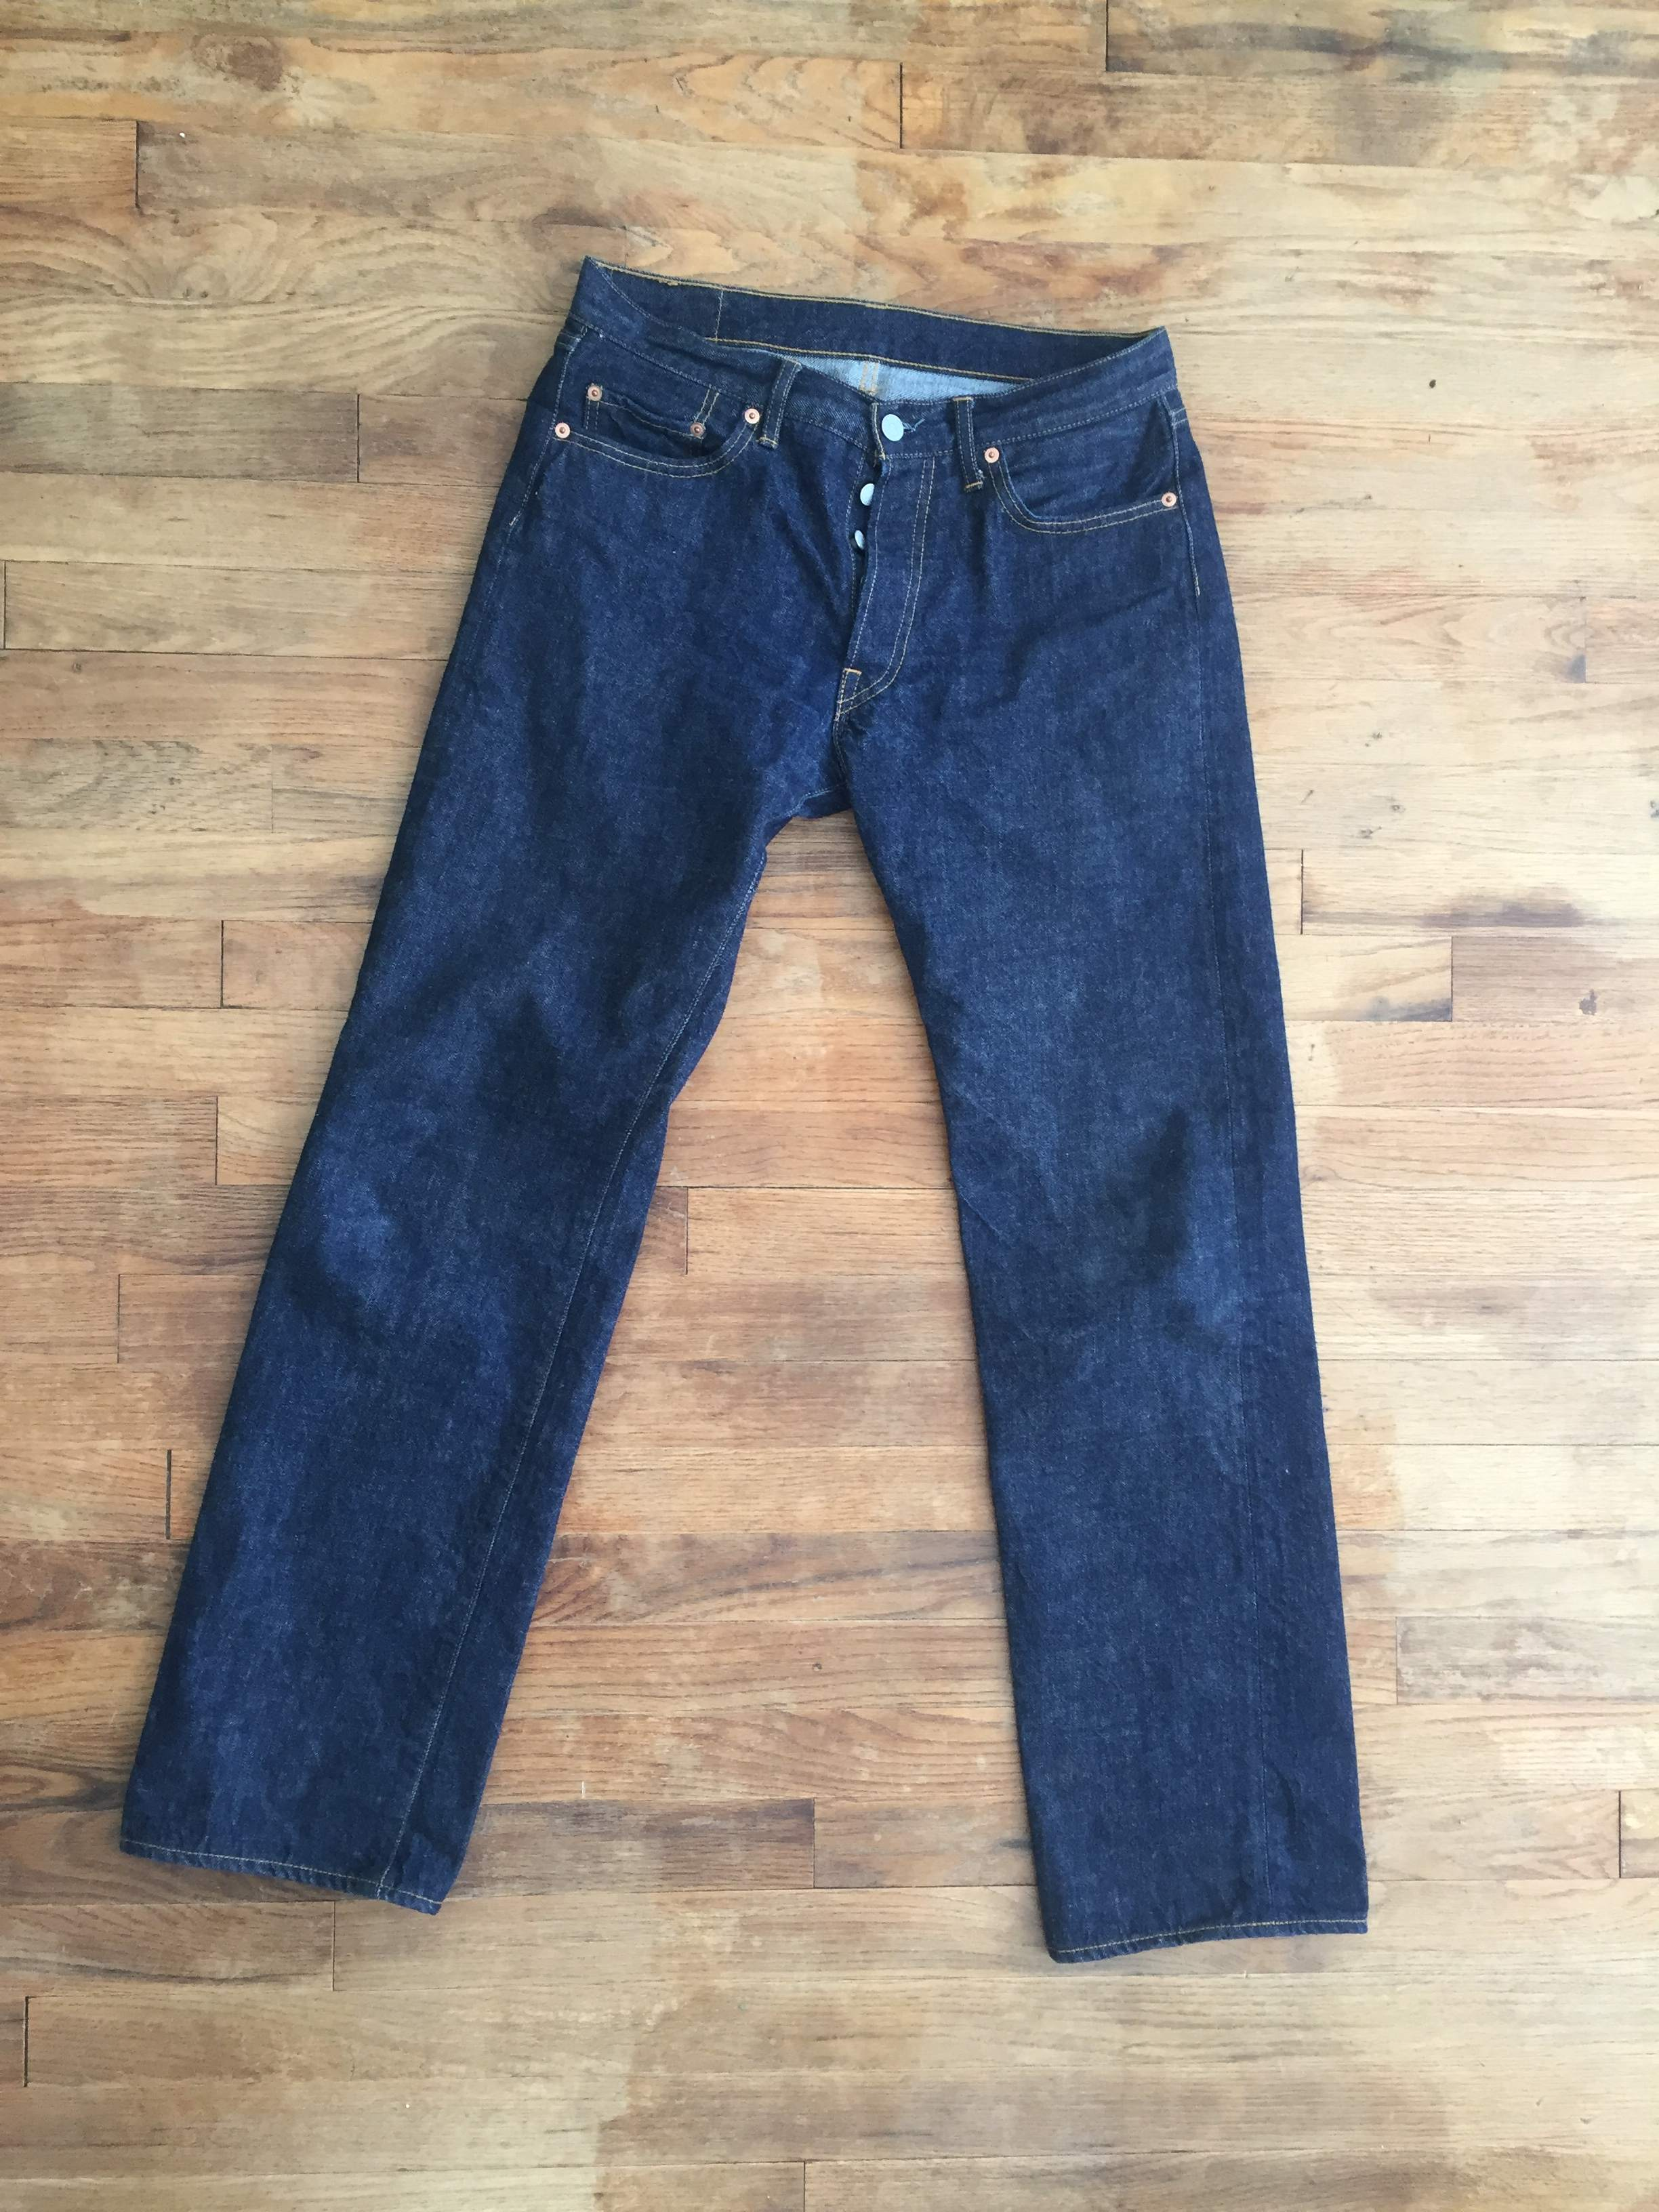 TCB 60's Jeans